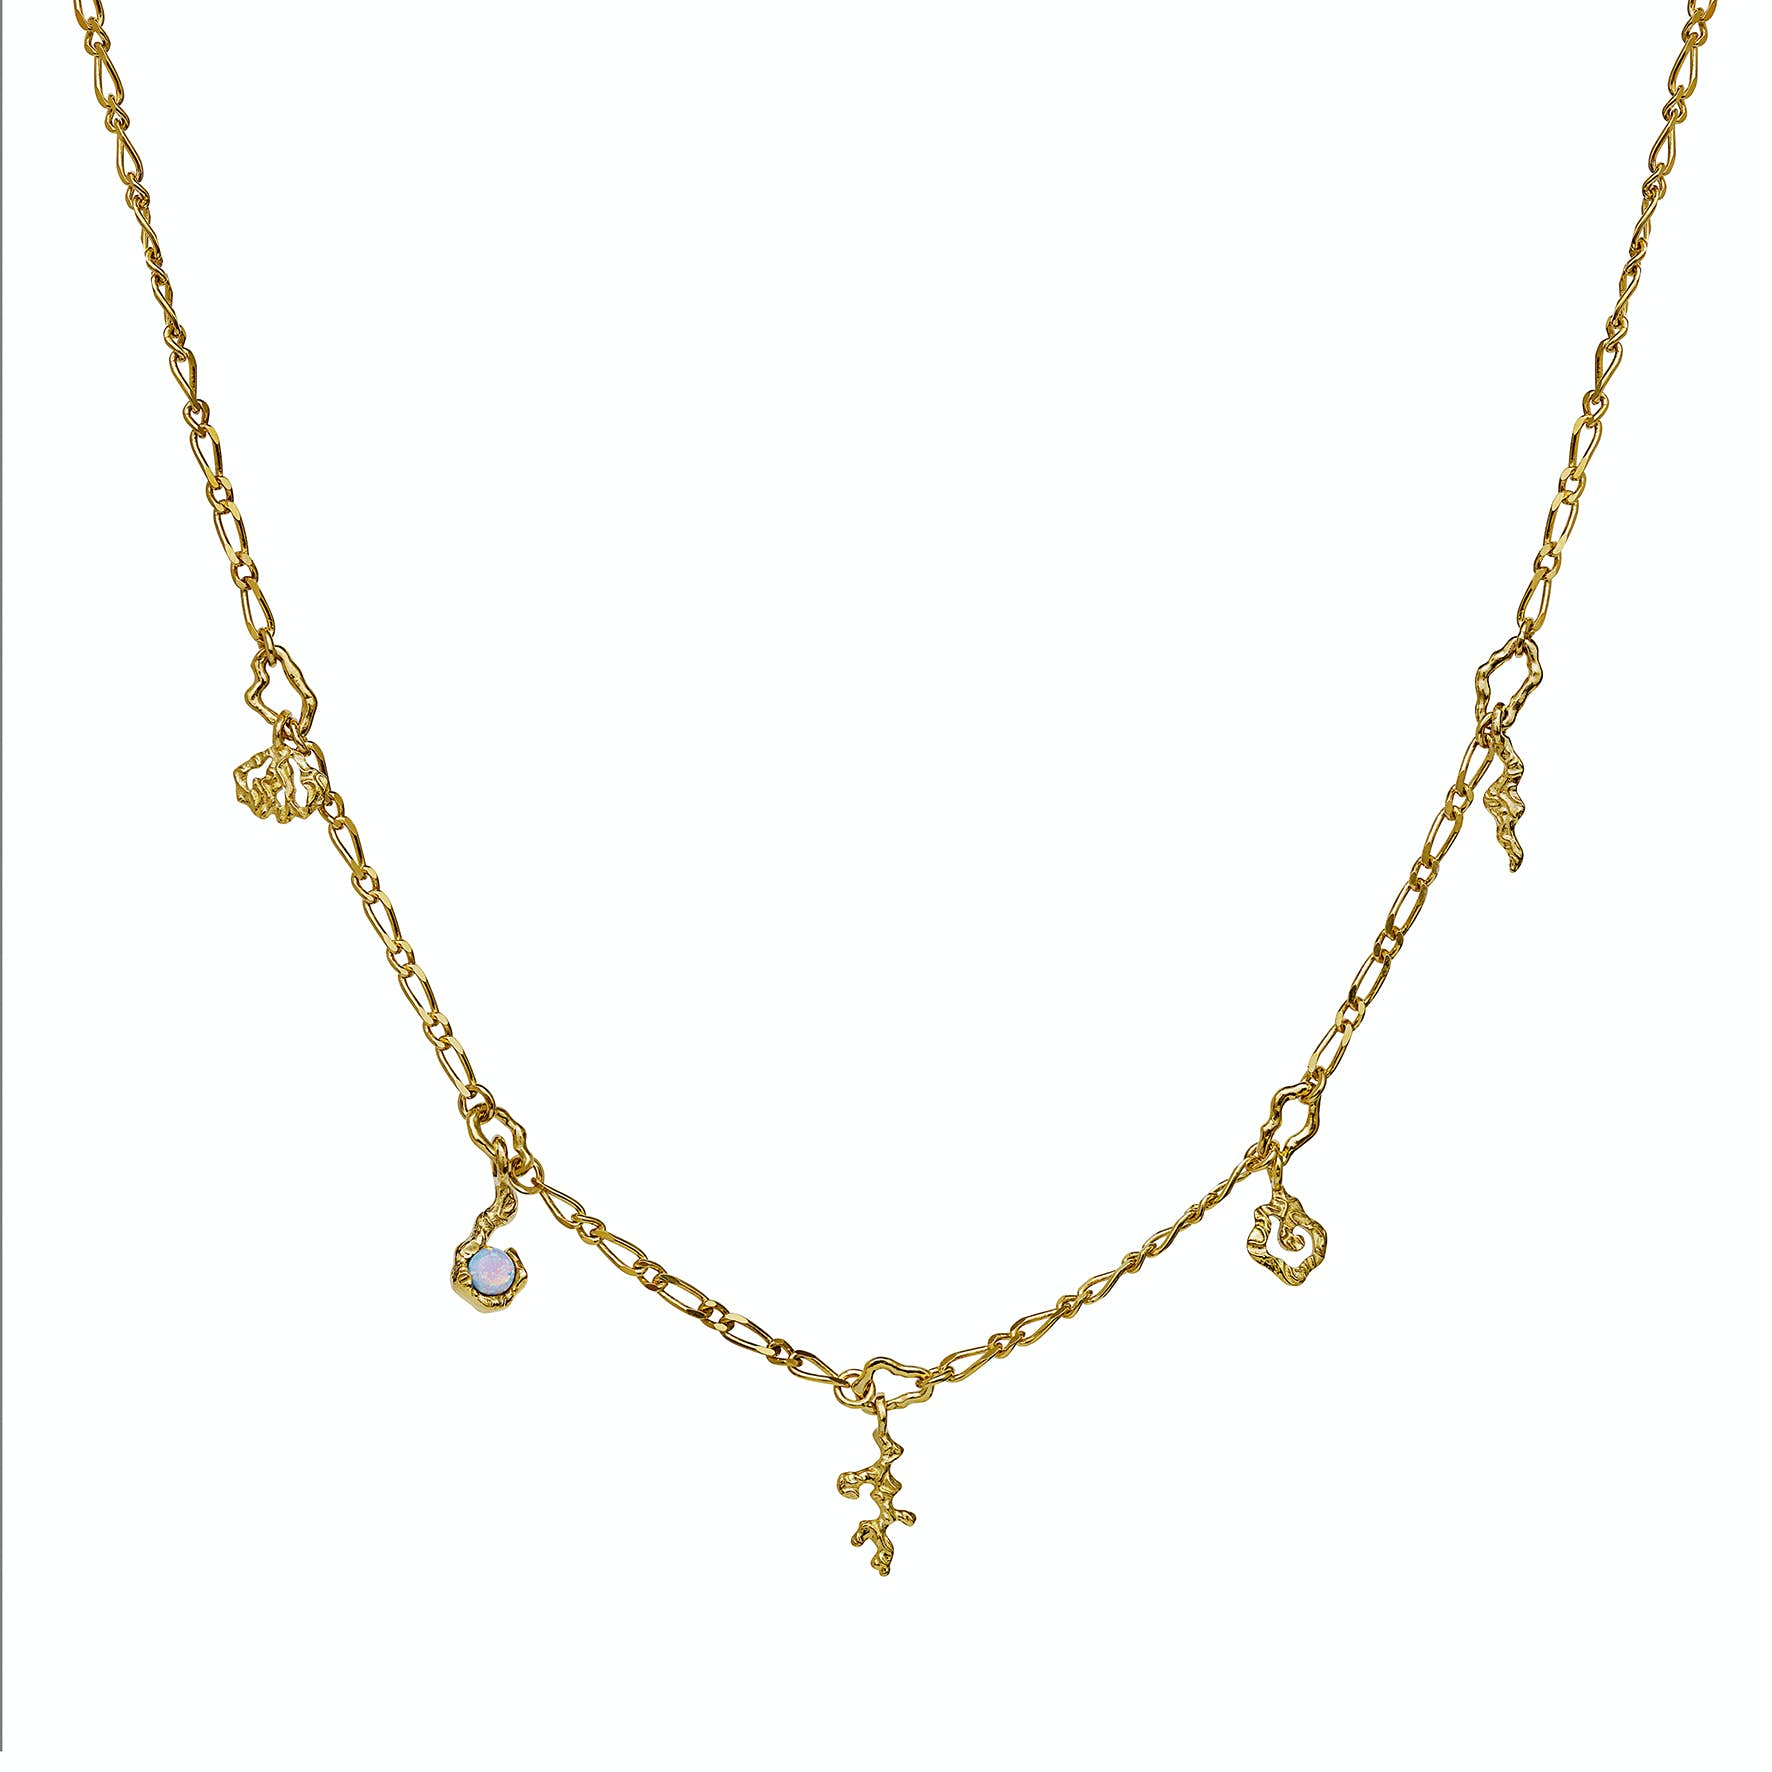 Hali Necklace from Maanesten in Goldplated-Silver Sterling 925